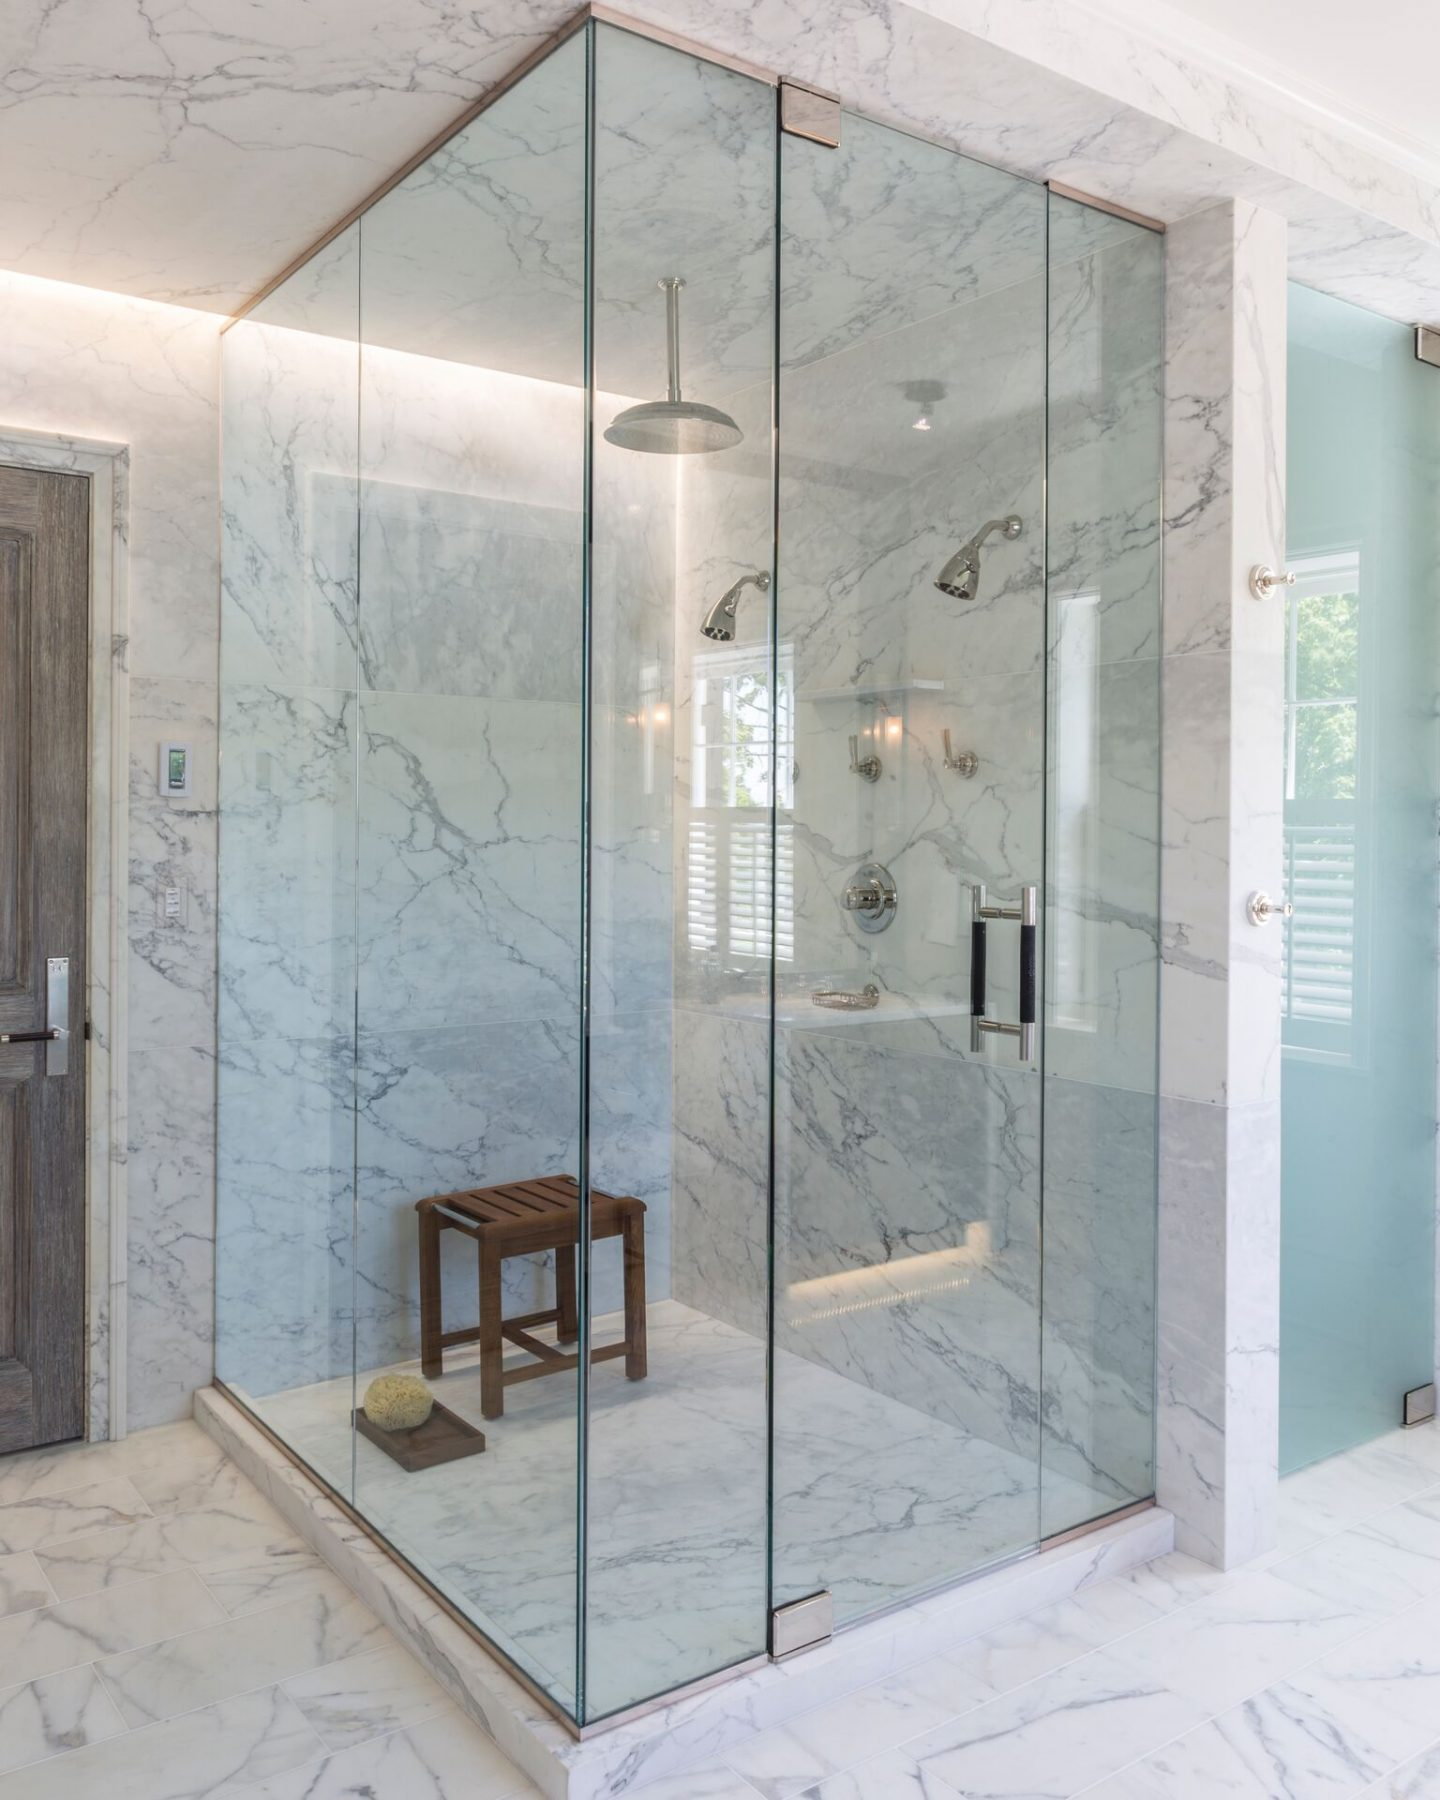 Luxurious marble shower. Classic and timeless interior design by Patrick Sutton. #patricksutton #interiordesign #luxury #timelessdesign